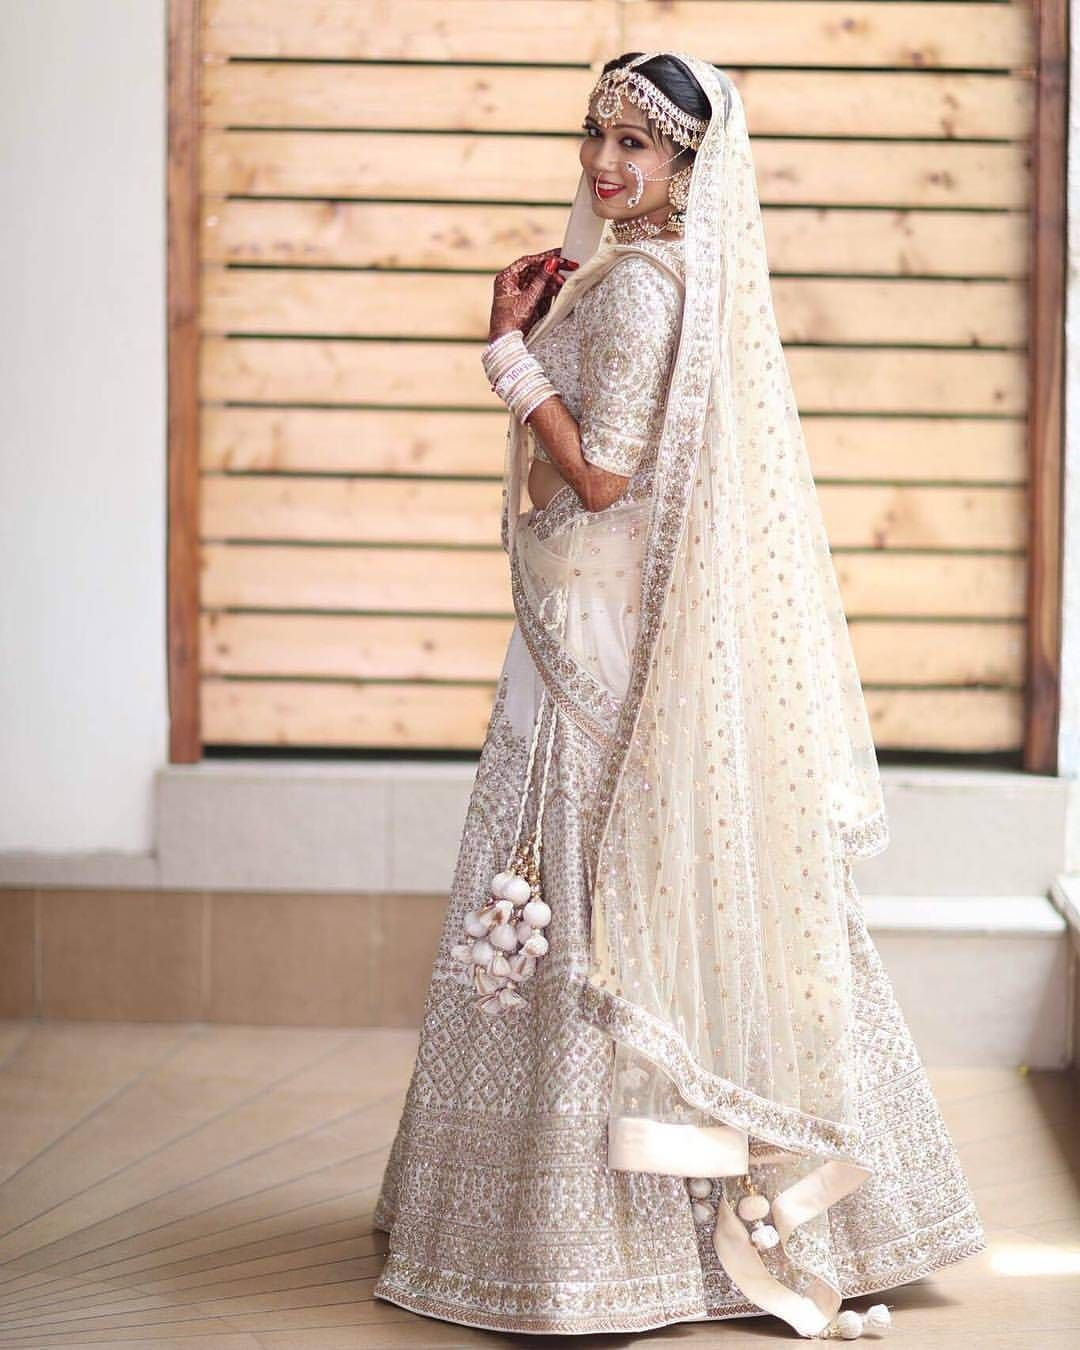 White Indian Wedding Dresses: Crushing On This All White Lehenga #shaadibazaar #wedding